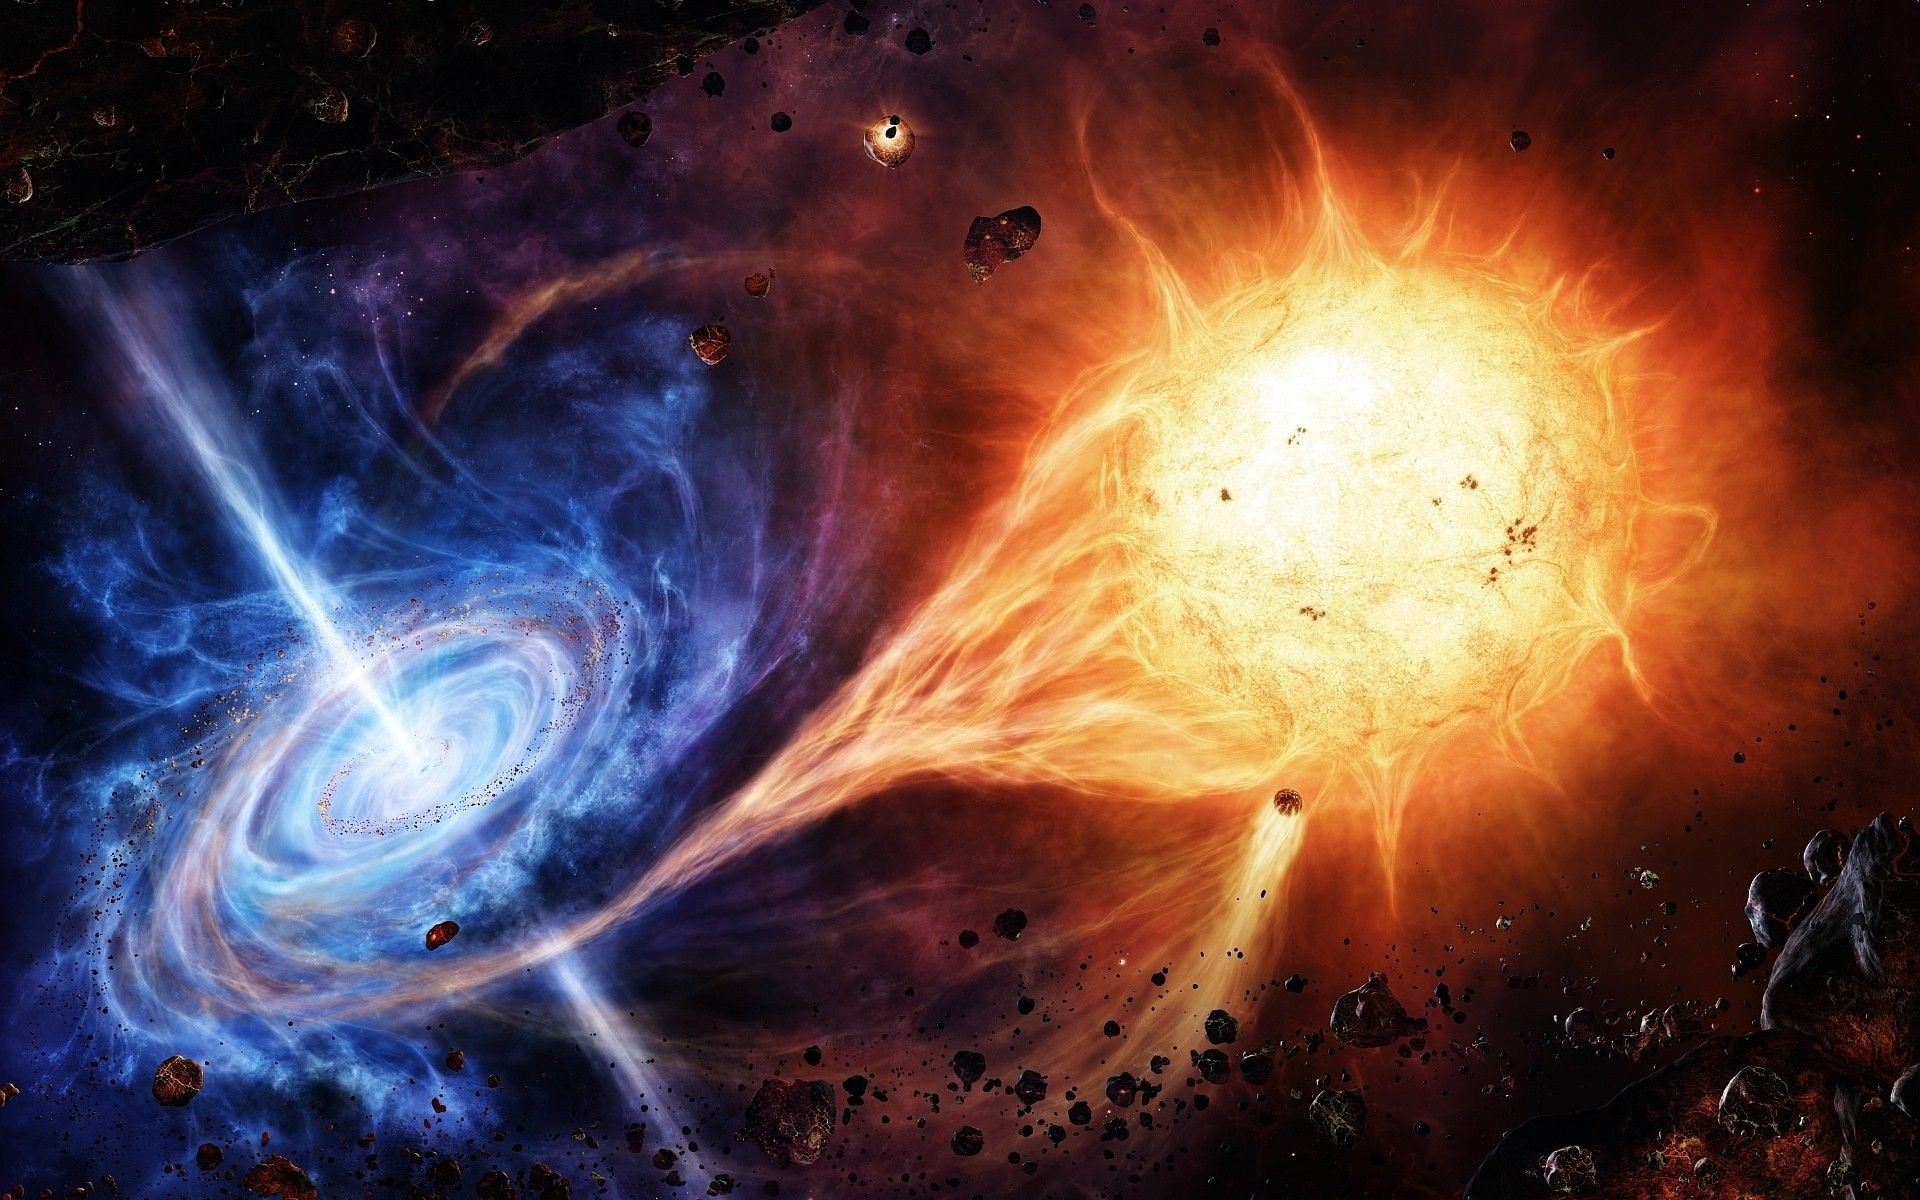 Outer Space Stars Black Hole Asteroids Disasters Quasar Space Wallpaper 1772276 Wallbase Cc Black Hole Wallpaper Nebula Space Pictures